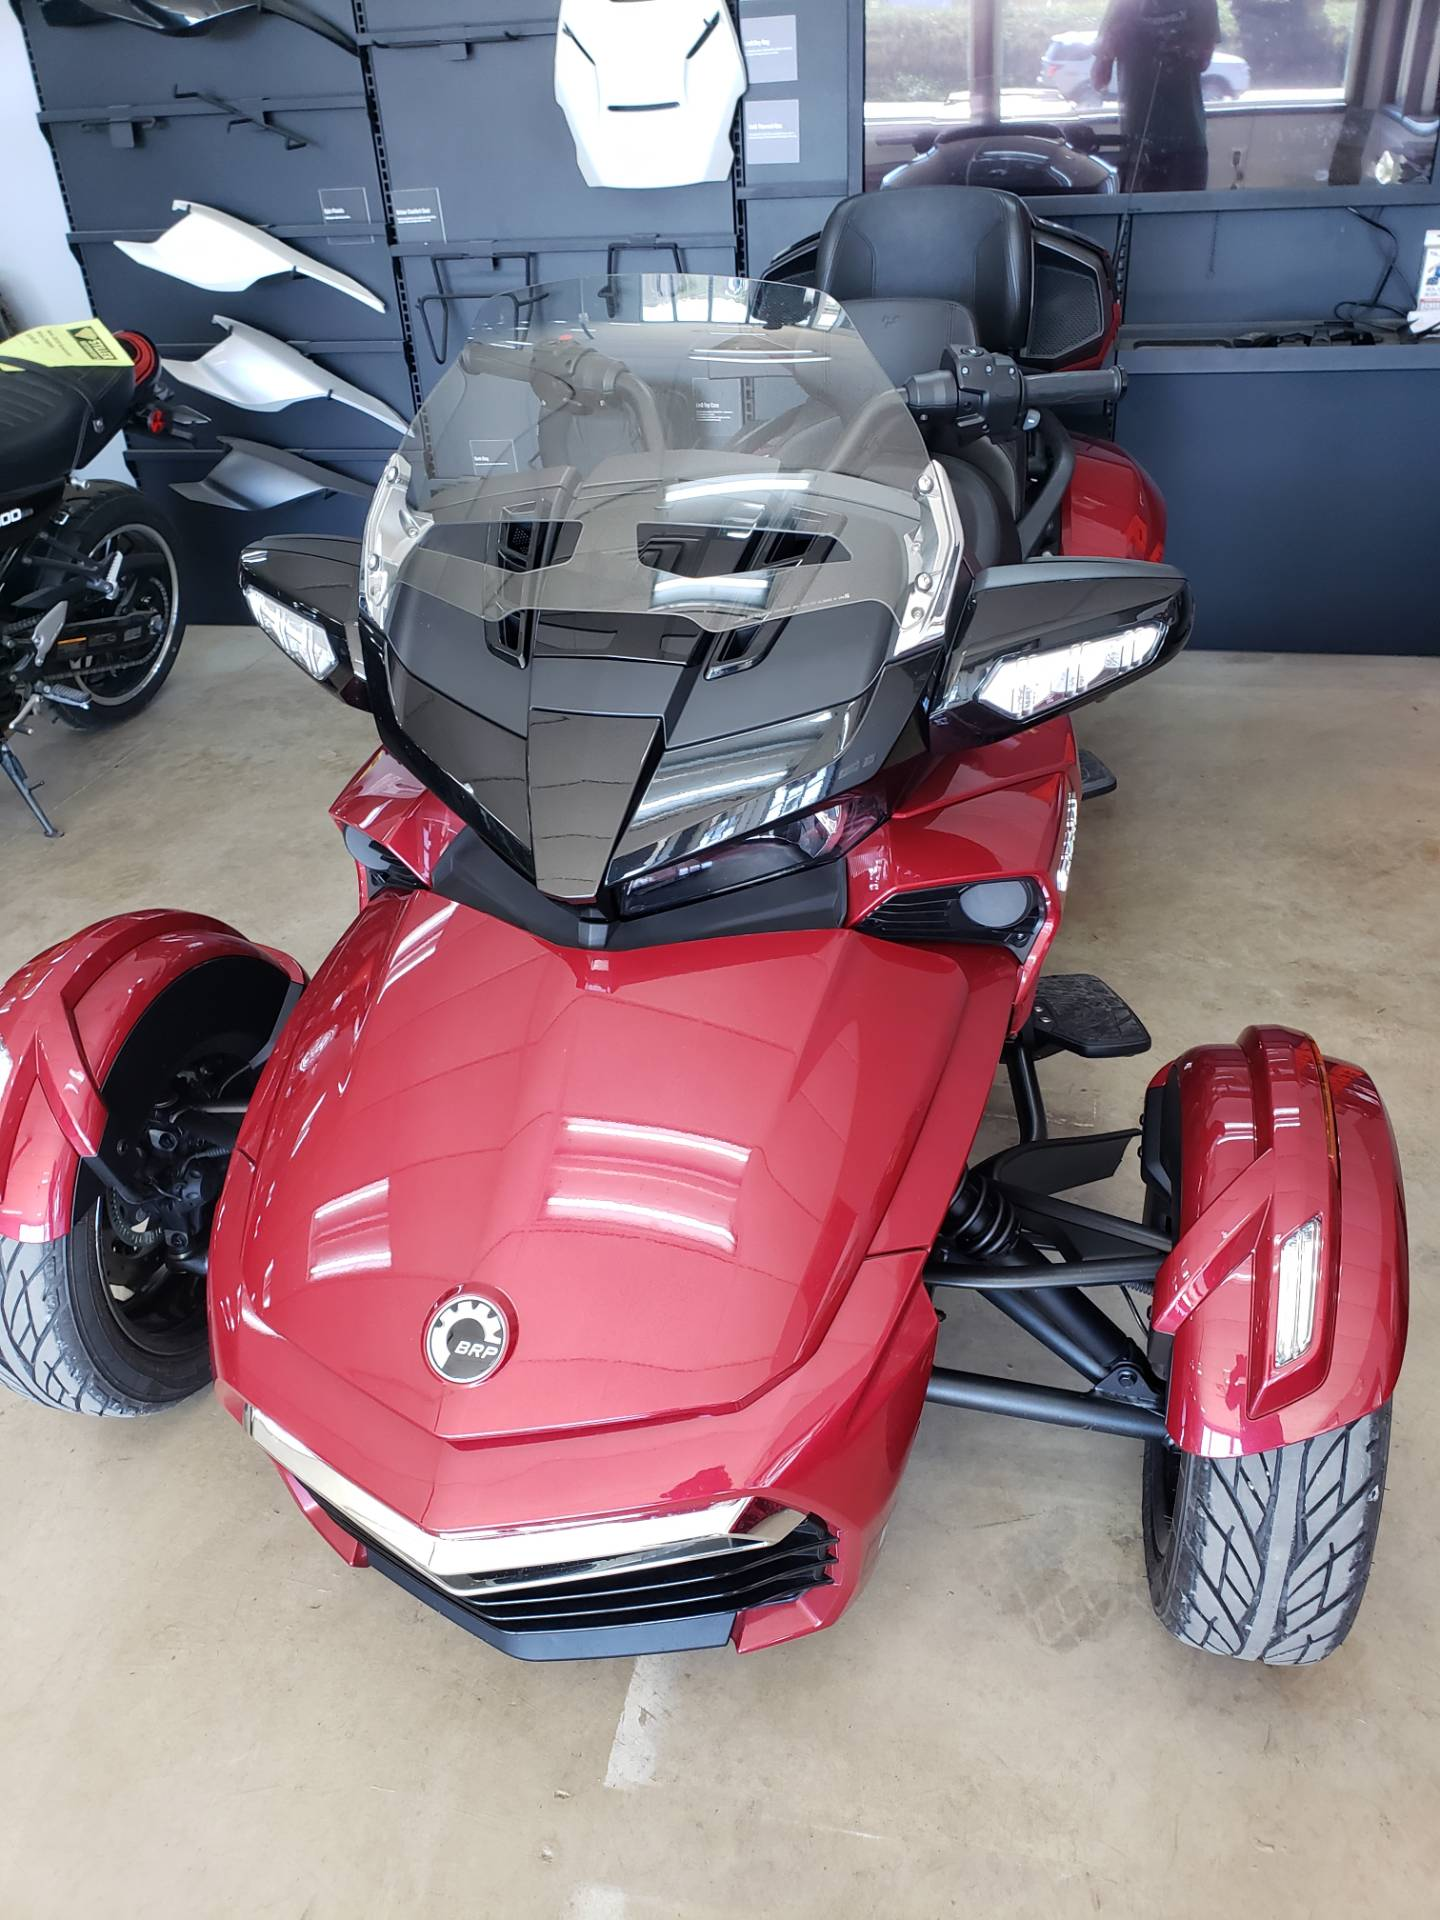 2017 Can-Am Spyder F3 Limited in Kittanning, Pennsylvania - Photo 1